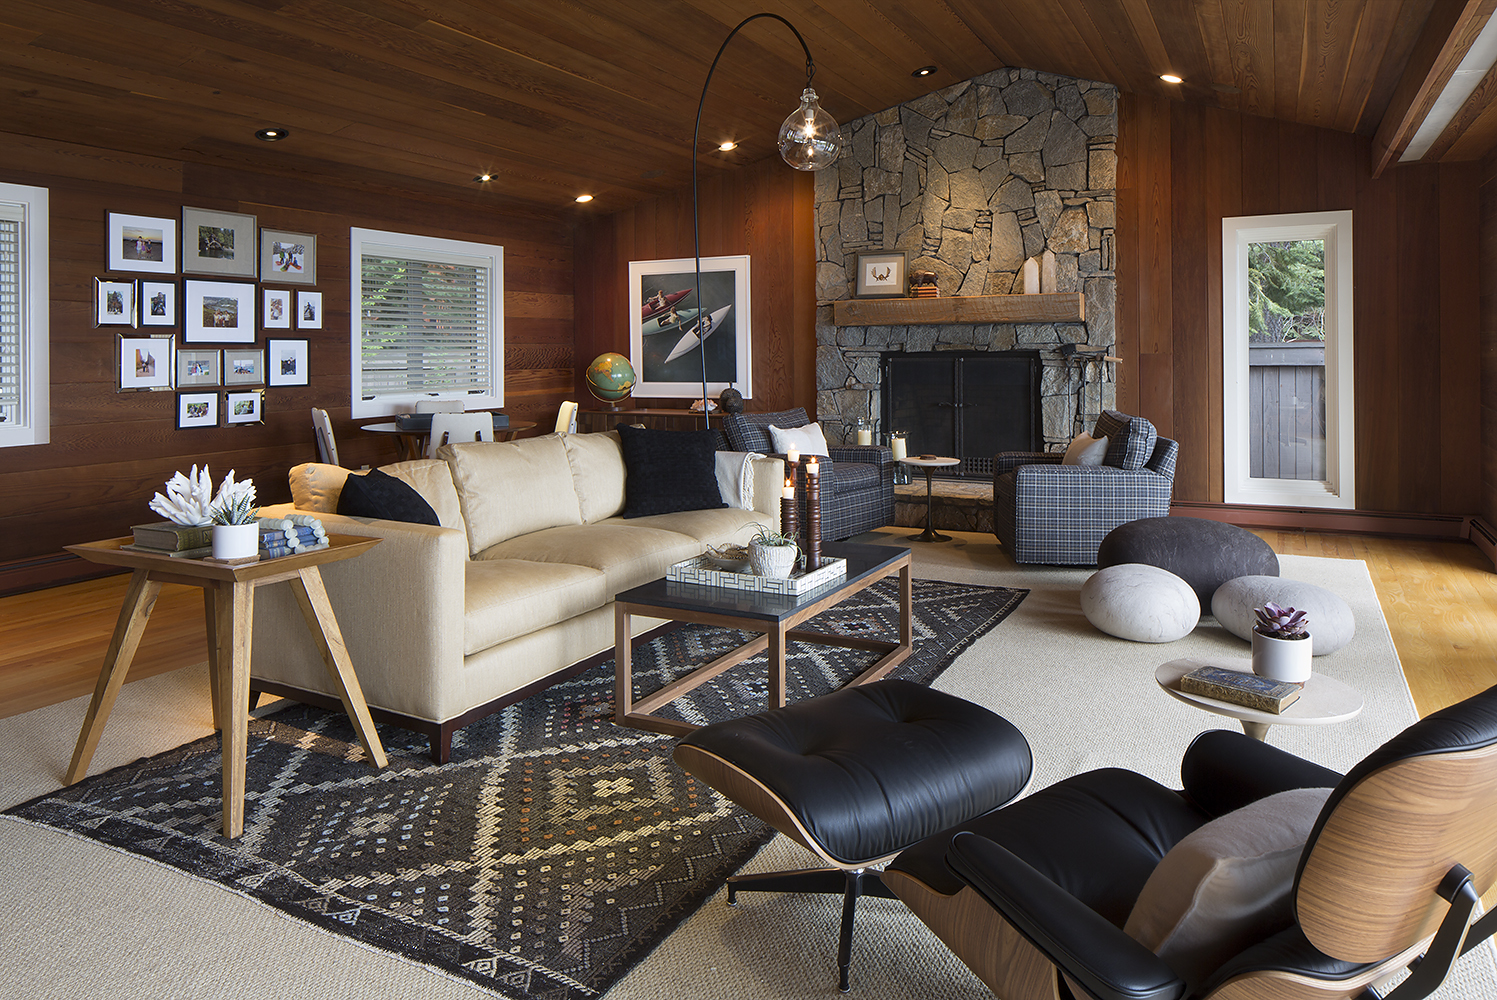 tahoe-living-room-jpg